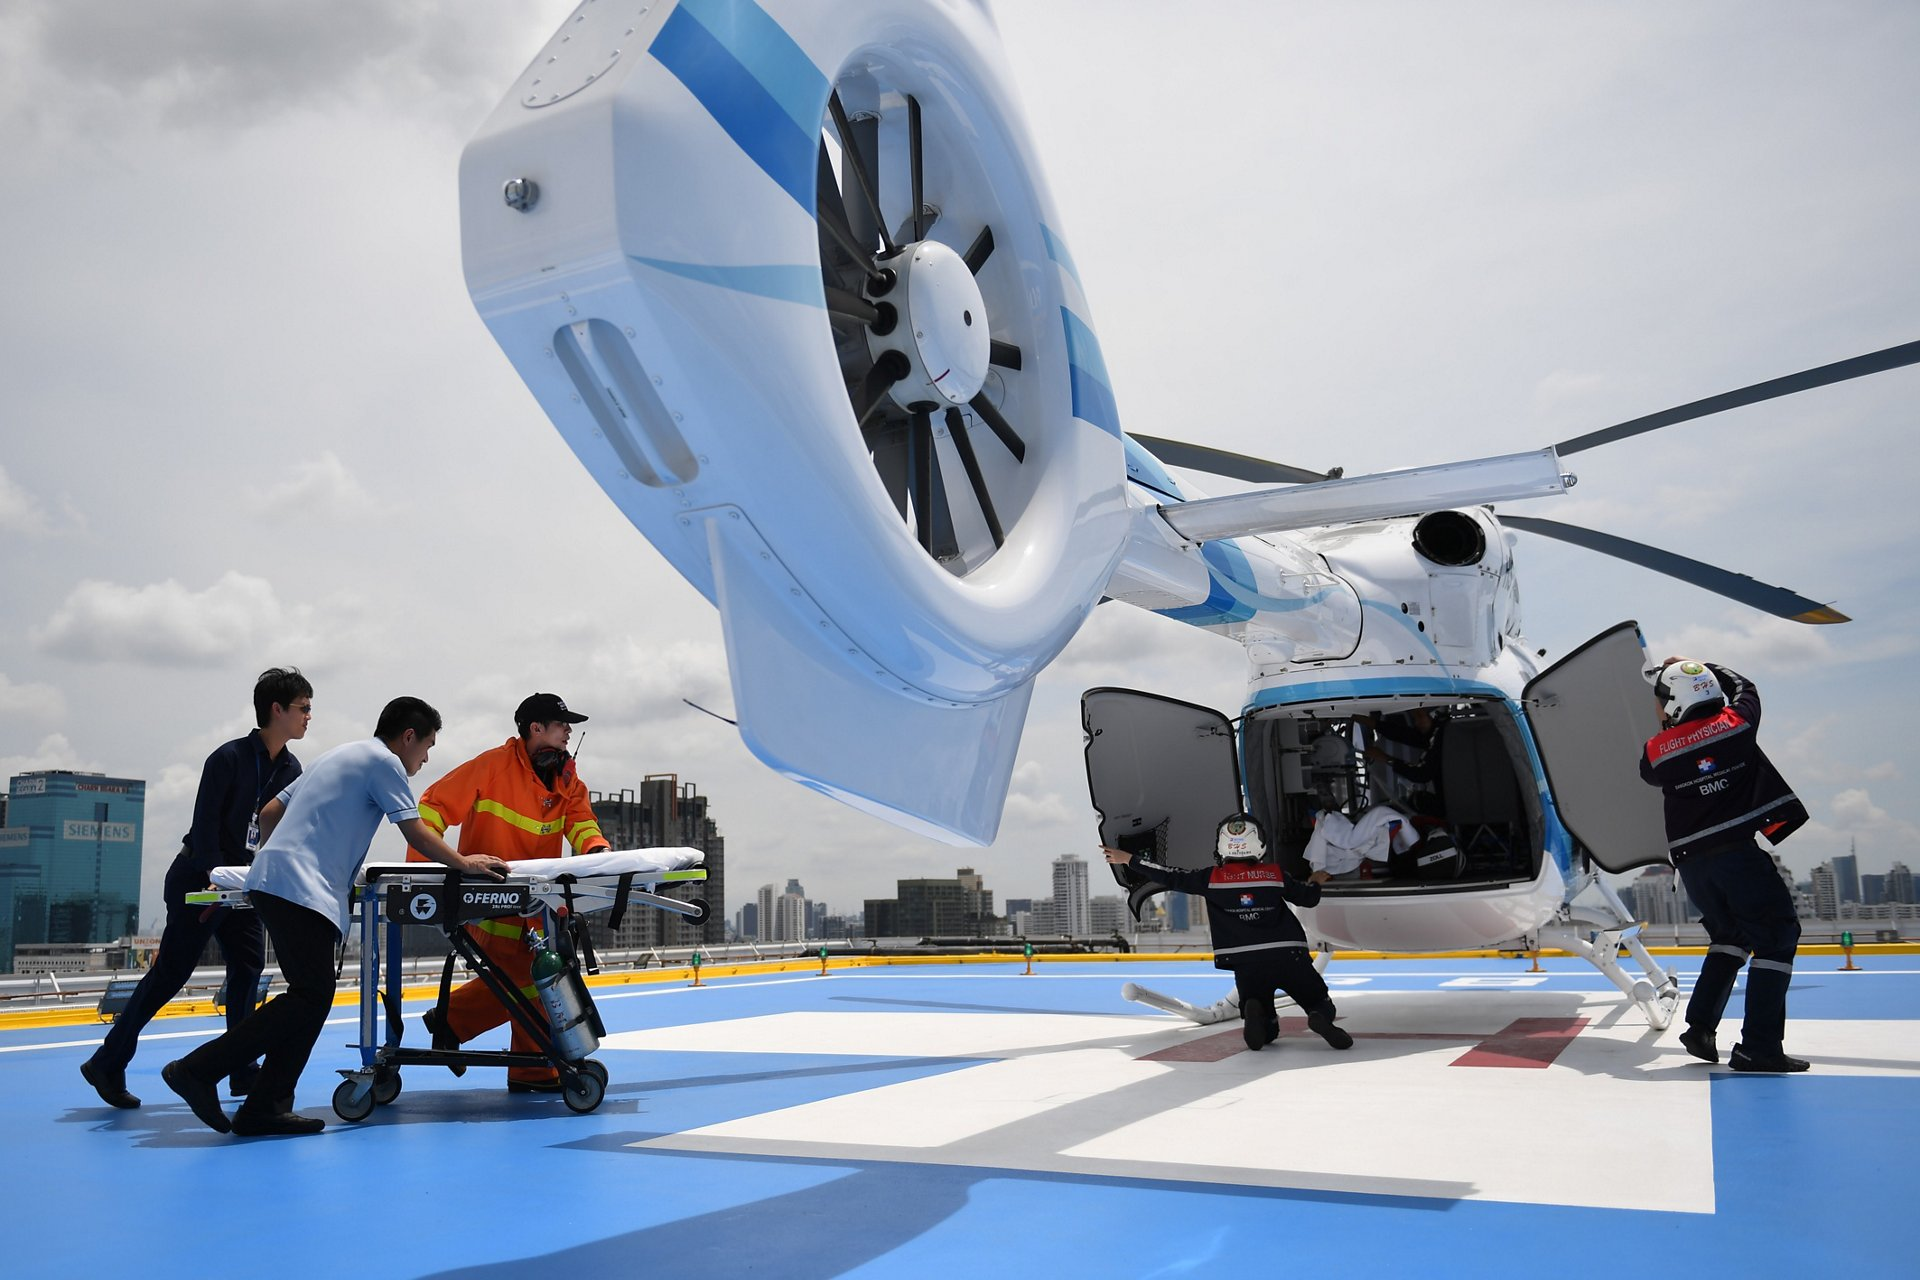 In Thailand, Bangkok Helicopter Services Company Ltd (BHS) manages its cost of operation by contracting with Bangkok Hospital to provide HEMS services using two H145s